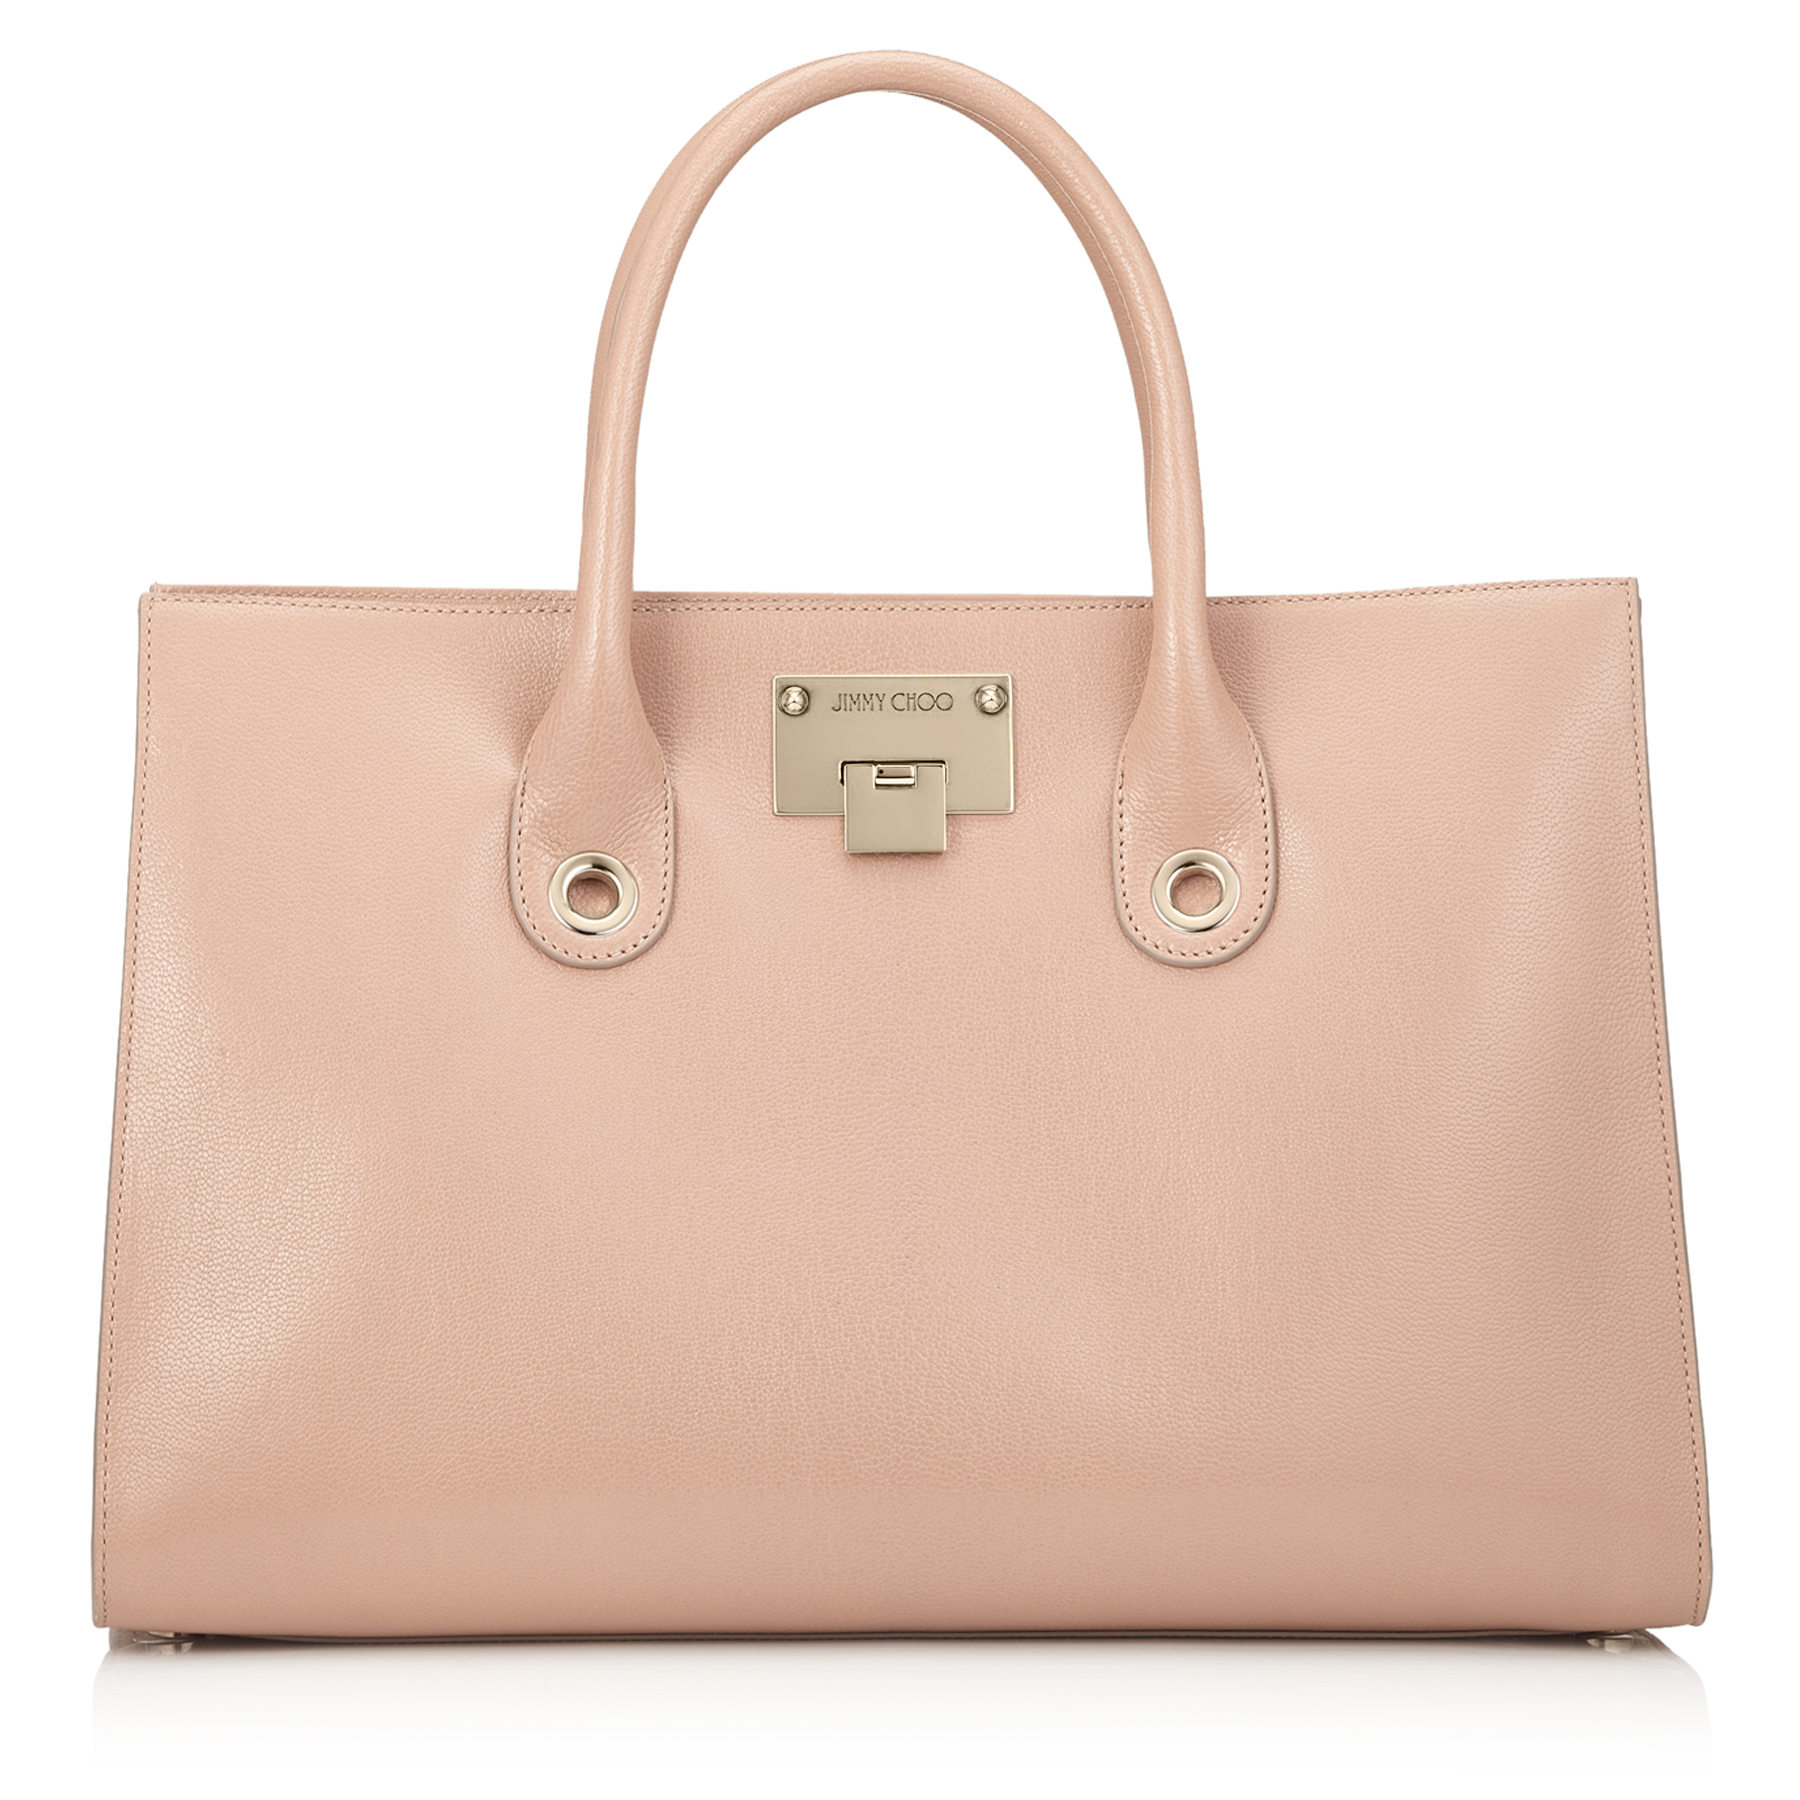 RILEY Ballet Pink Soft Grained Leather Tote Bag